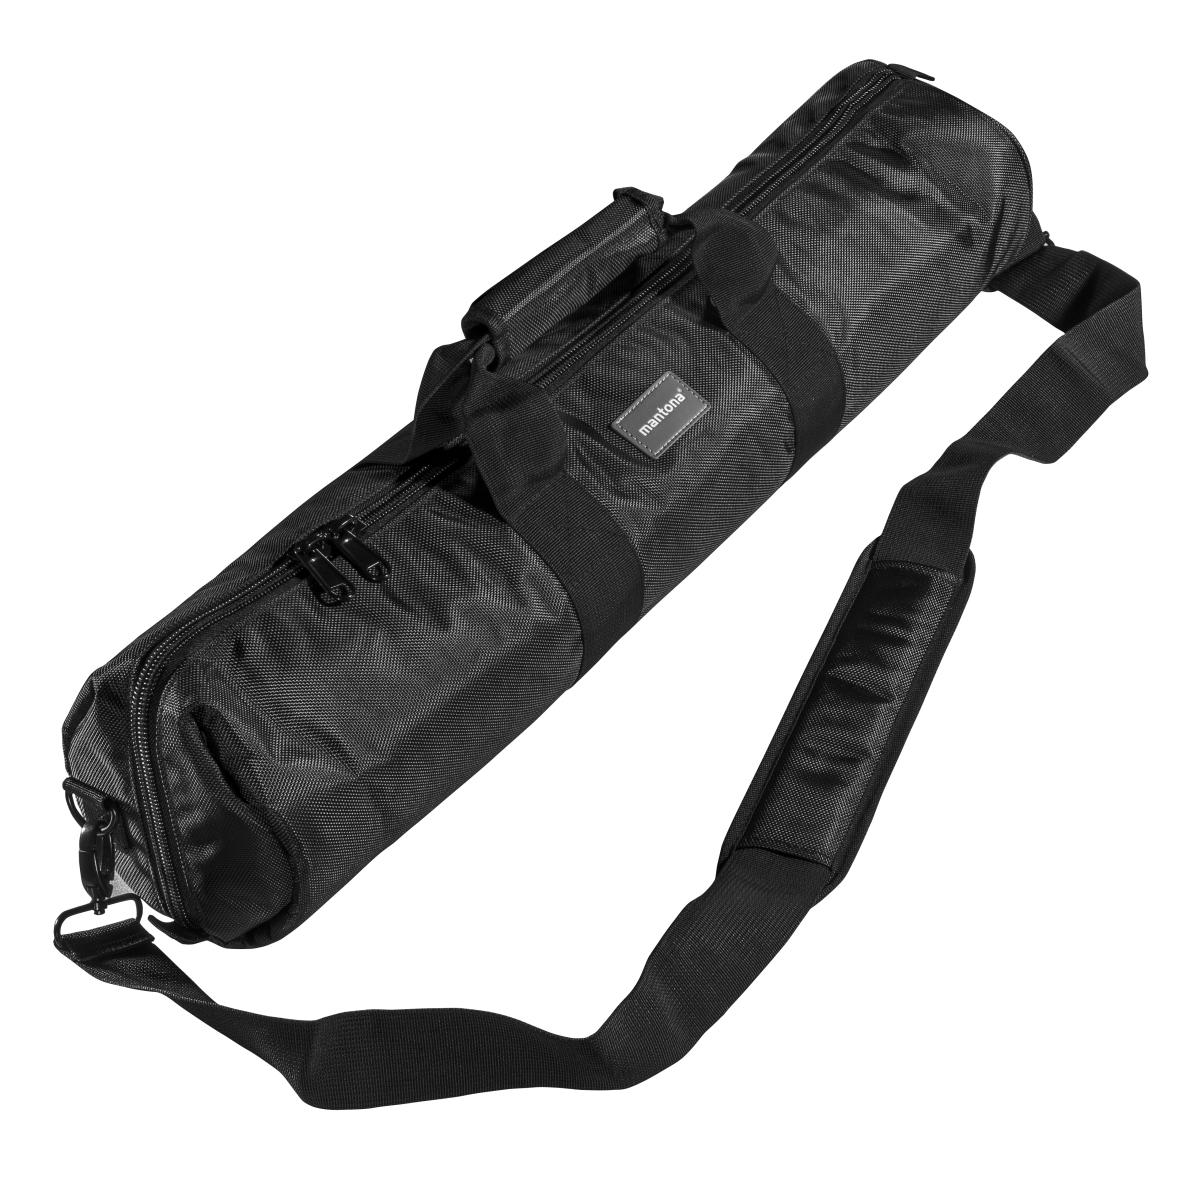 Mantona phototripod bag XL padded 66cm